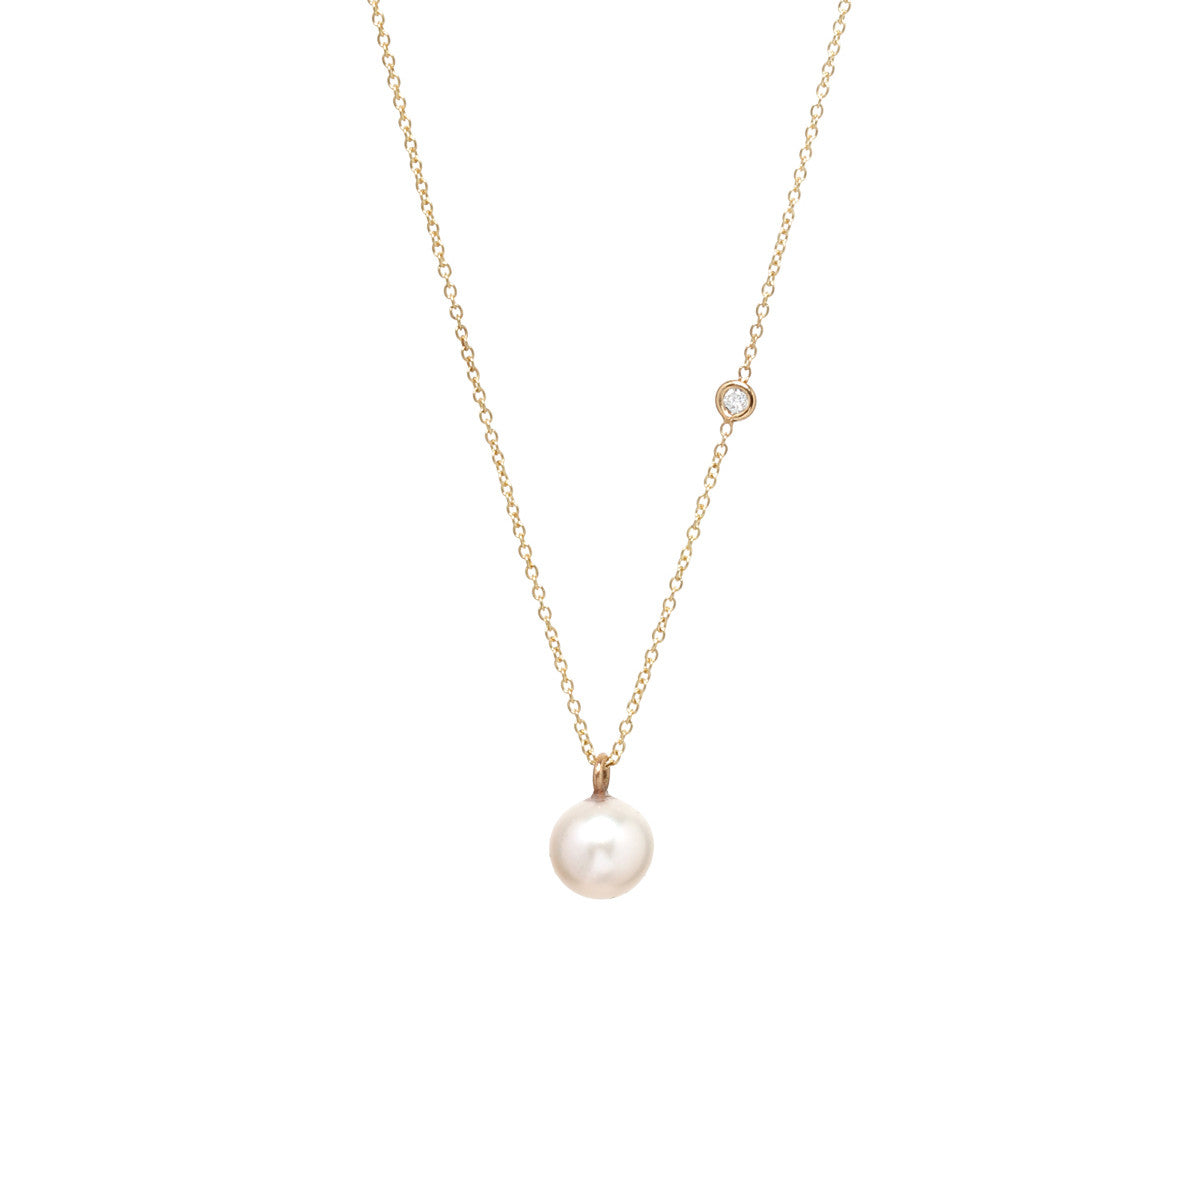 Zo chicco 14k large pearl and diamond necklace 14k large pearl and diamond necklace mozeypictures Gallery